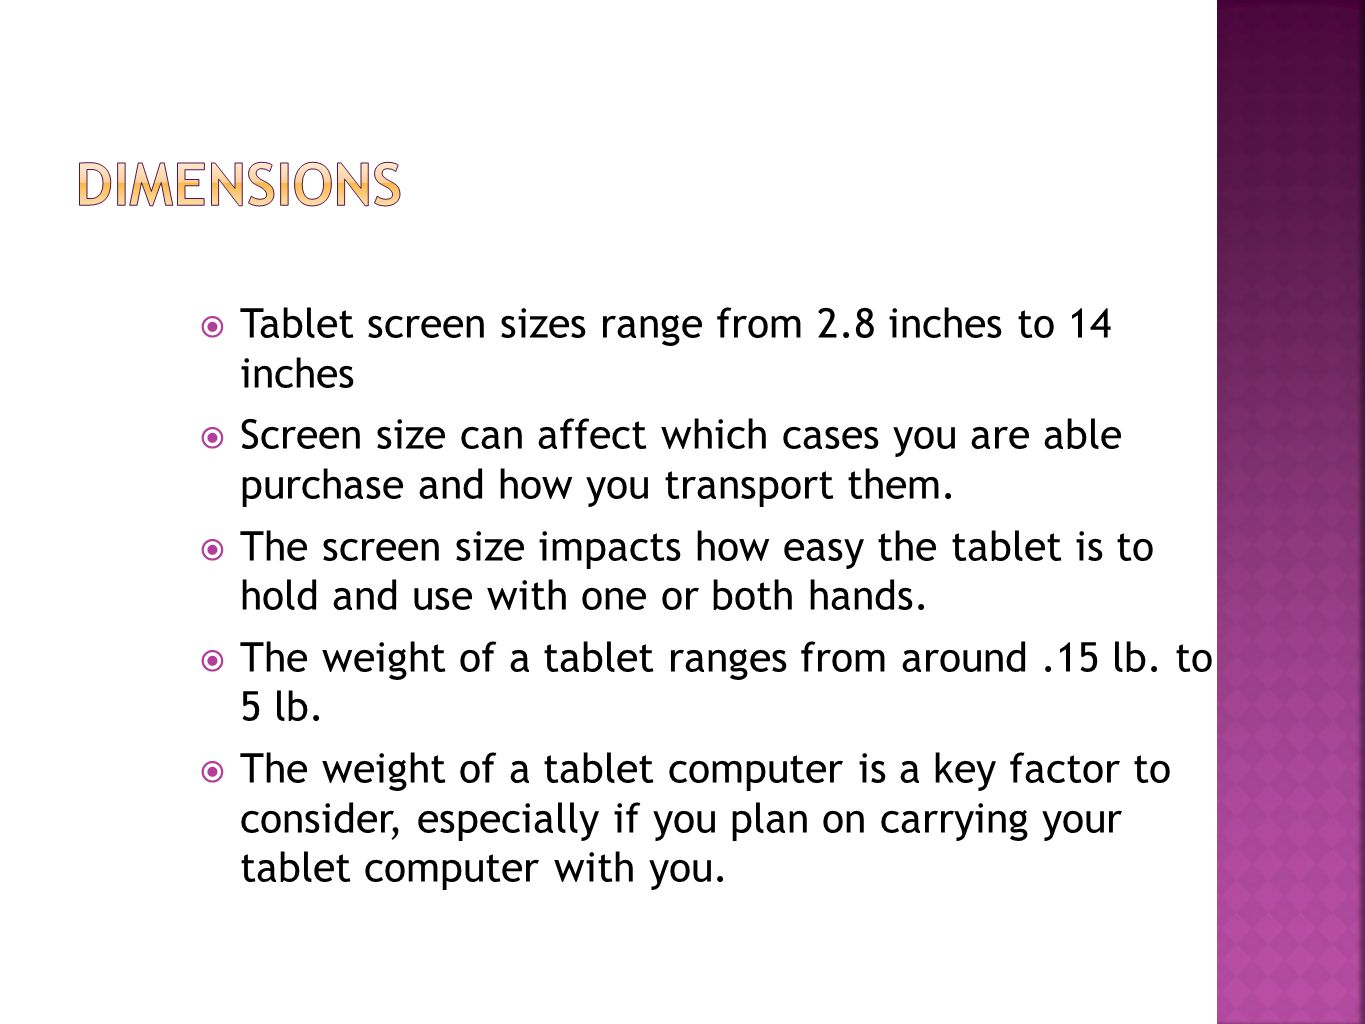  Tablet screen sizes range from 2.8 inches to 14 inches  Screen size can affect which cases you are able purchase and how you transport them.